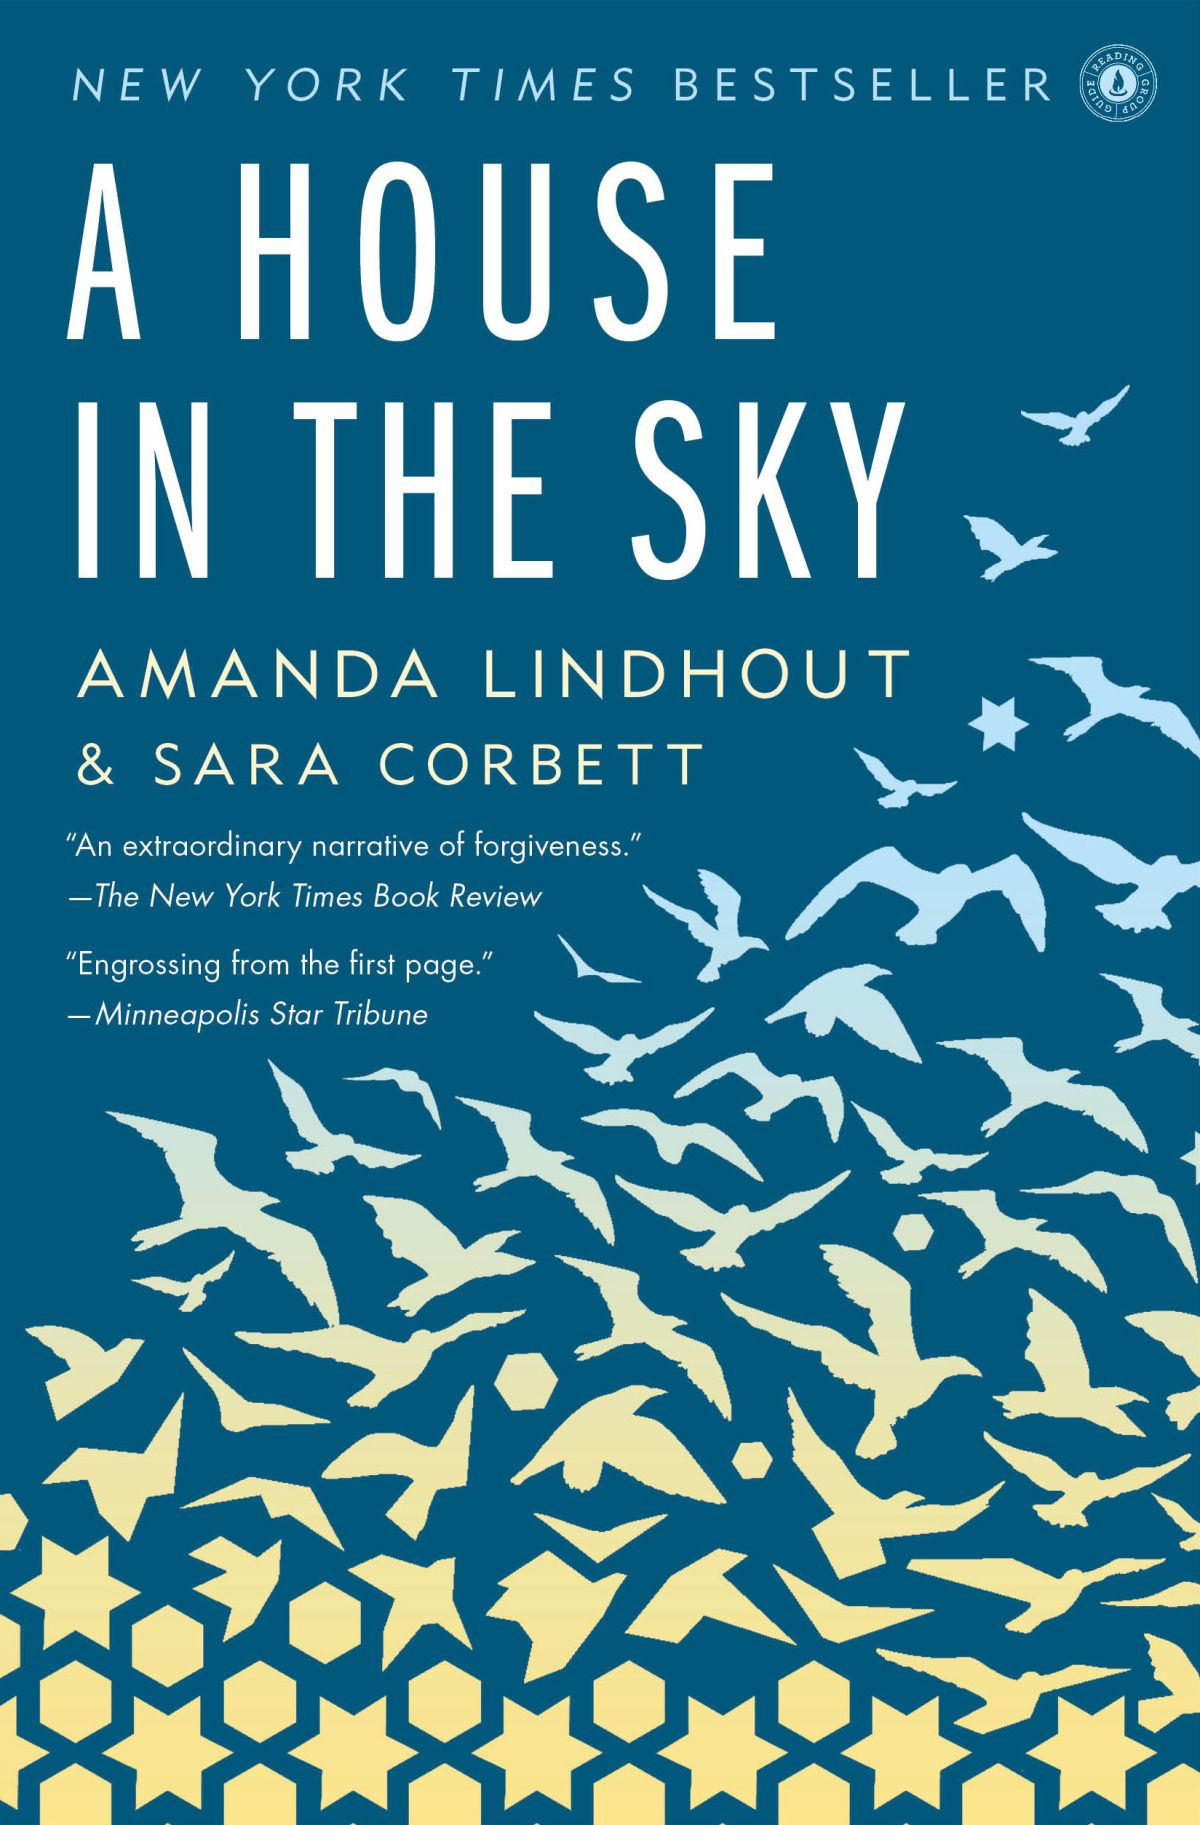 {READ IT} A House in the Sky by Amanda Lindhout and Sara Corbett // one of my all-time fave reads. Devoured it in just a few days last winter. #MMDchallenge #MMDreading